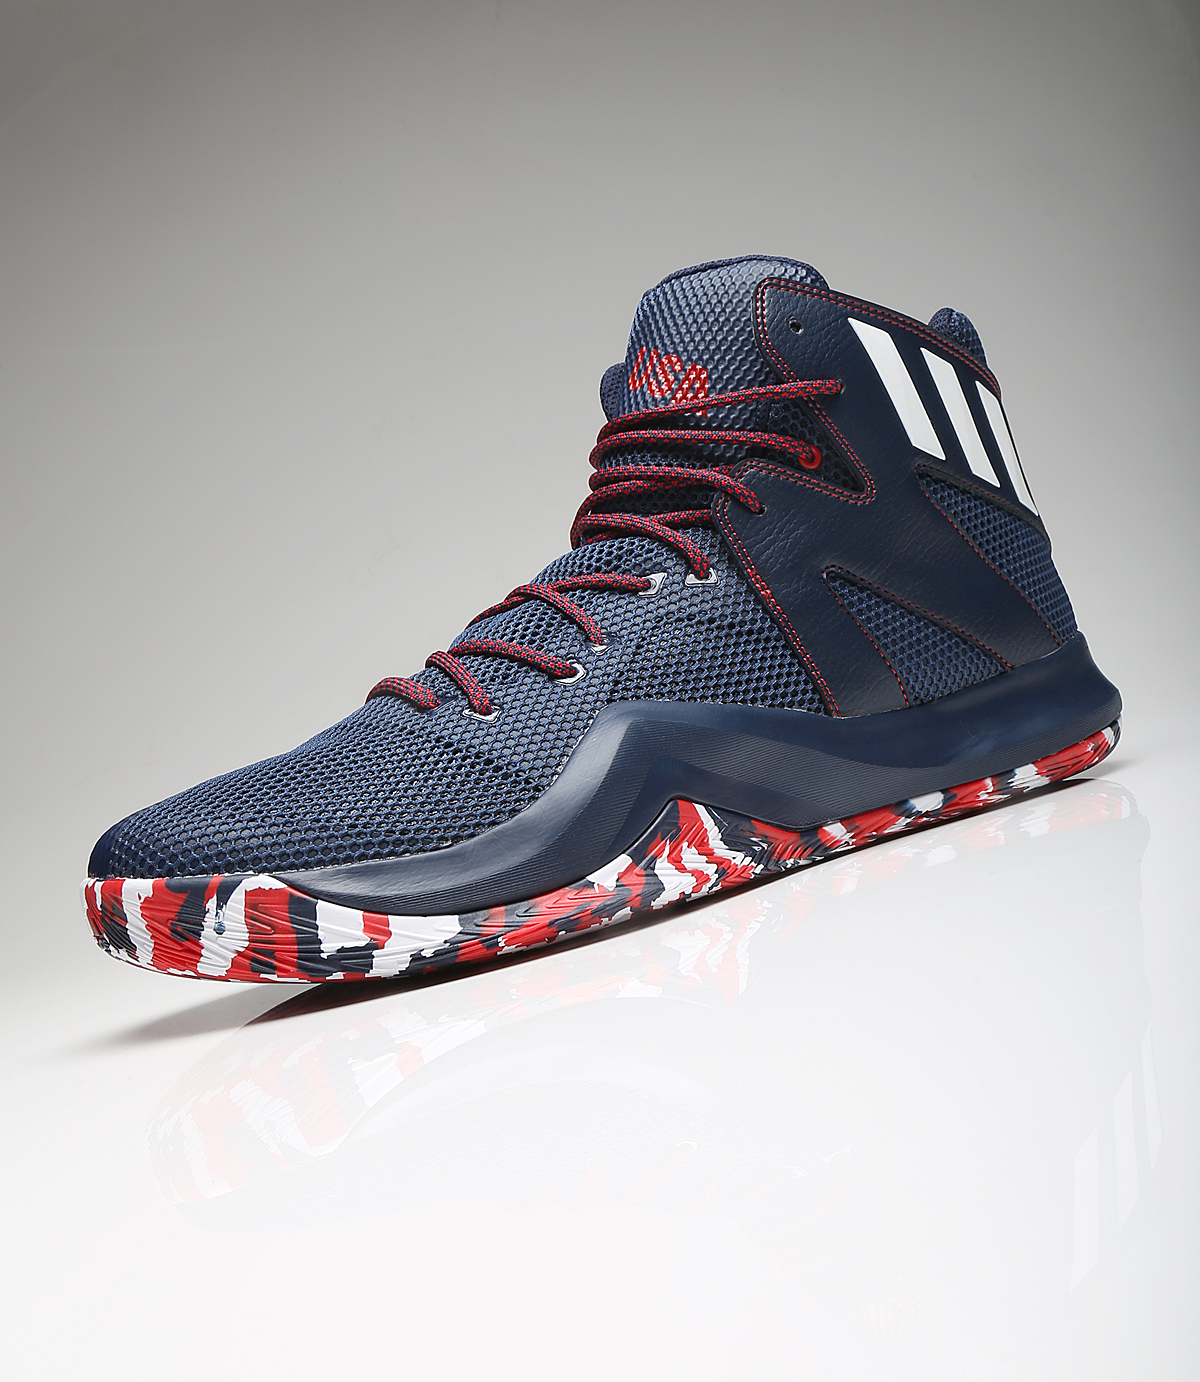 low priced 40b5d 070a5 where to buy adidas kids pro spark 2018 basketball shoe a050f c347d  ebay  post navigation f858a f64e0